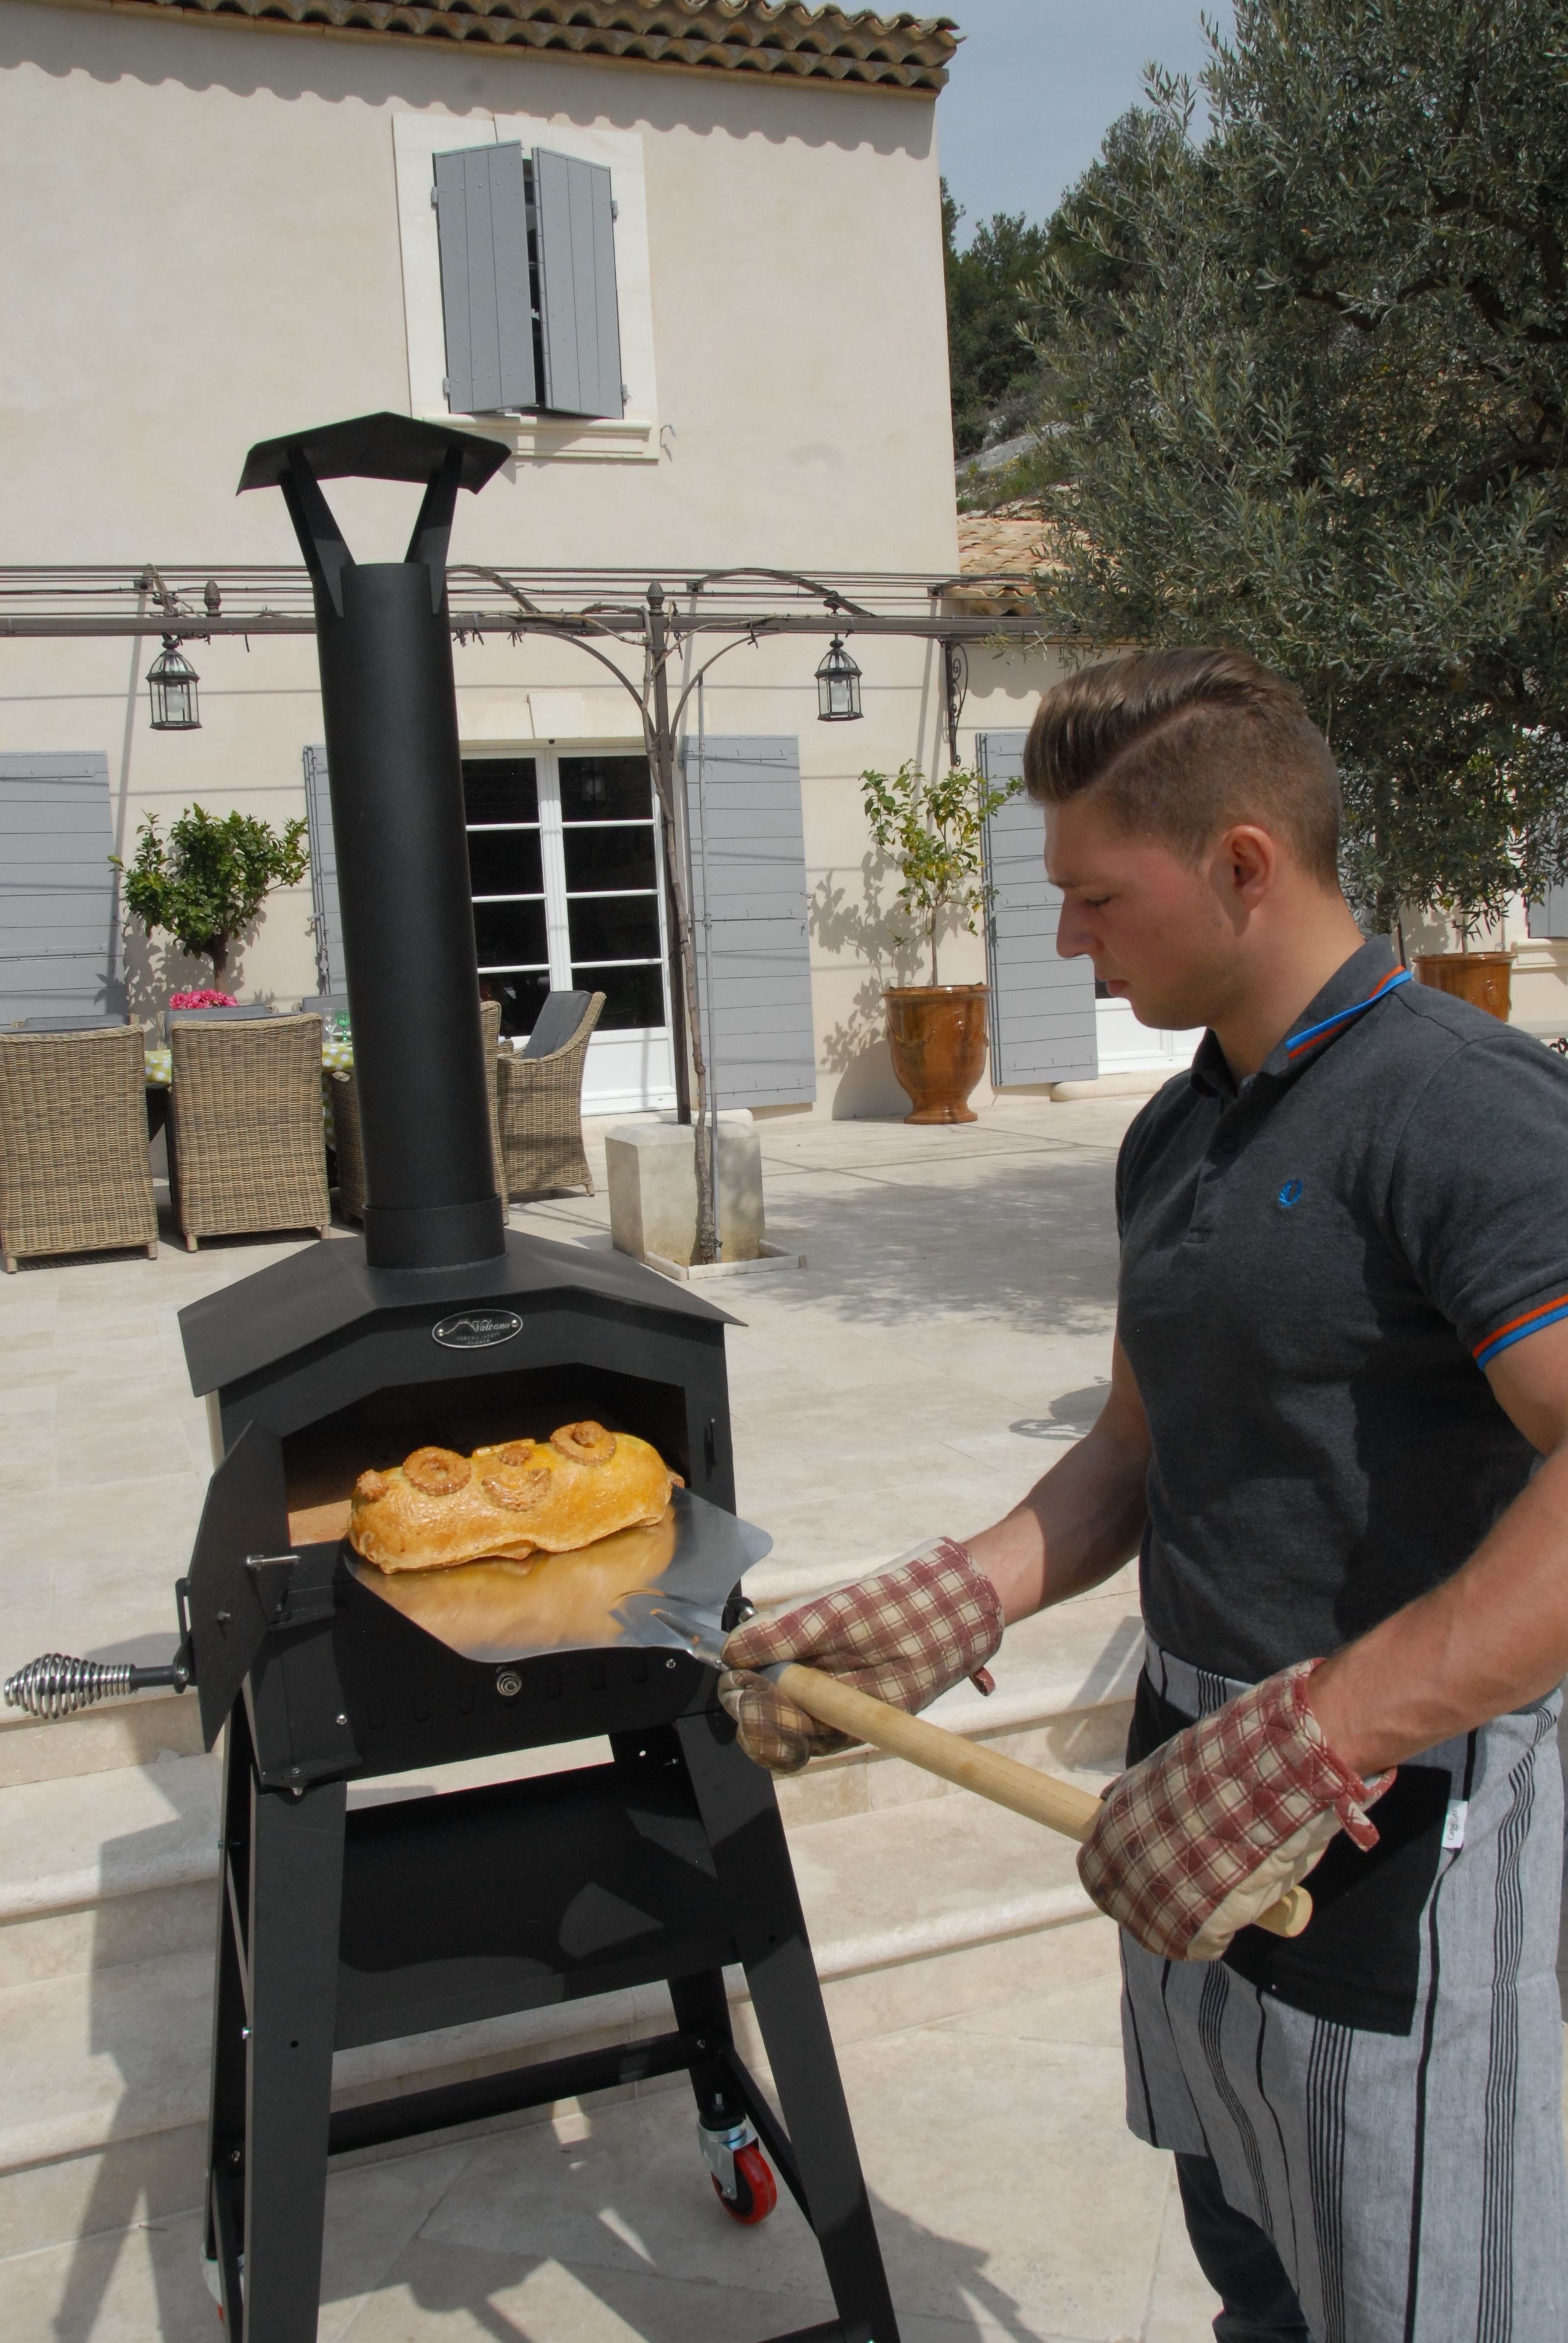 Create artisan breads and pizzas for bakin gin napoli outdoor wood